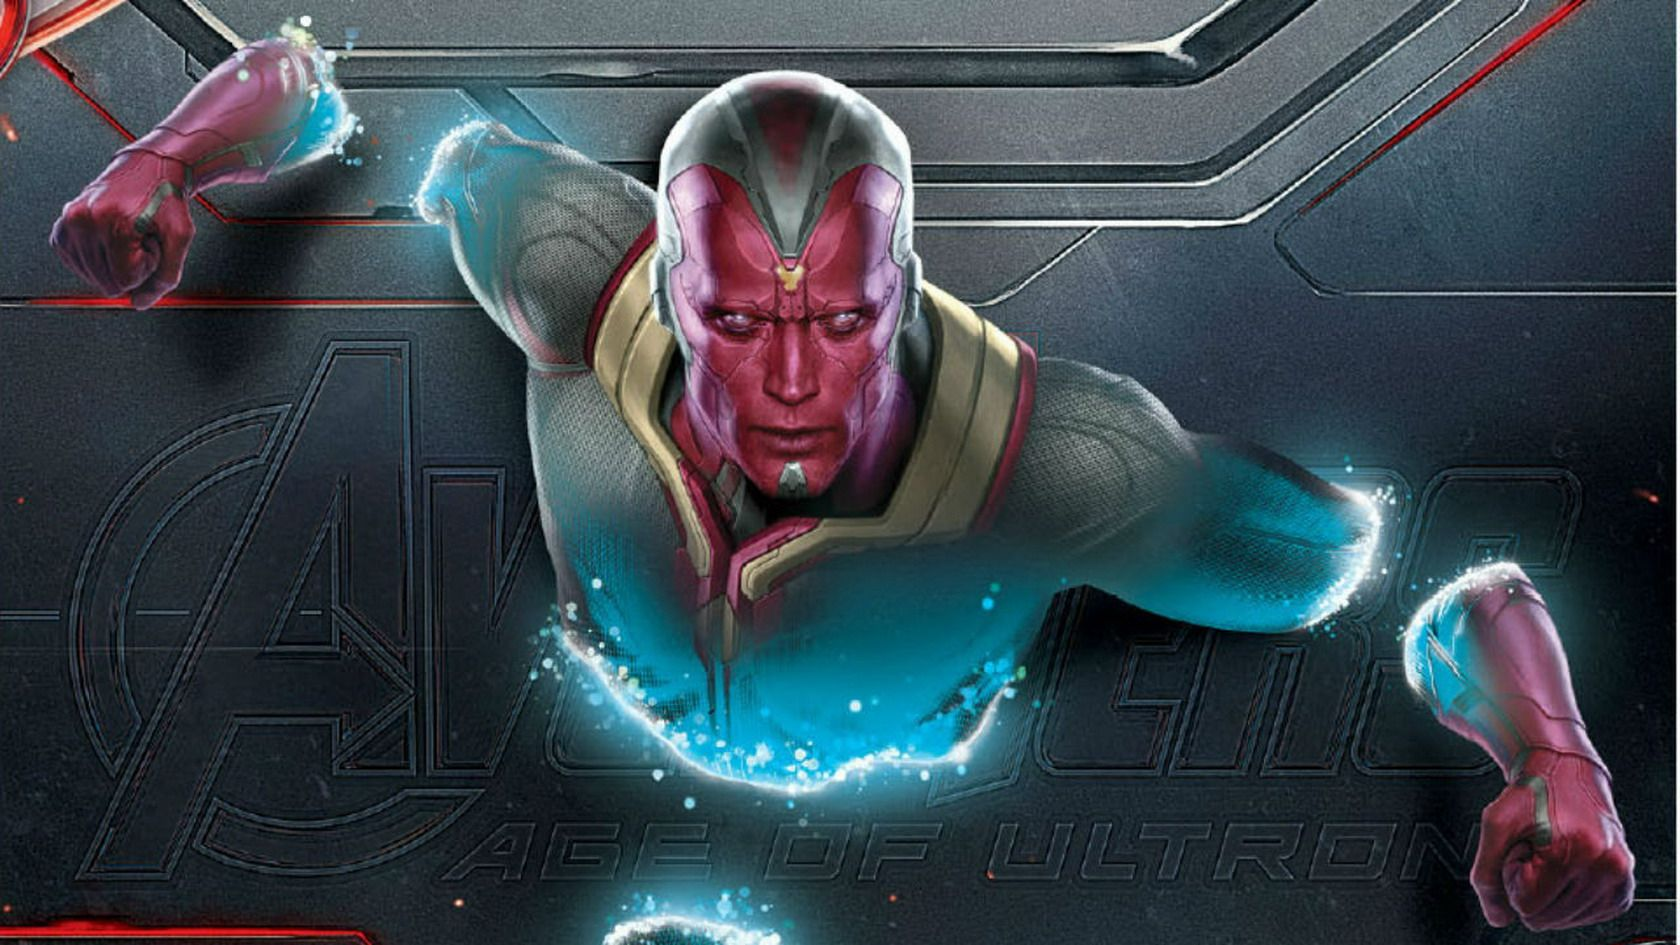 vision marvel avengers super hero hd wallpaper